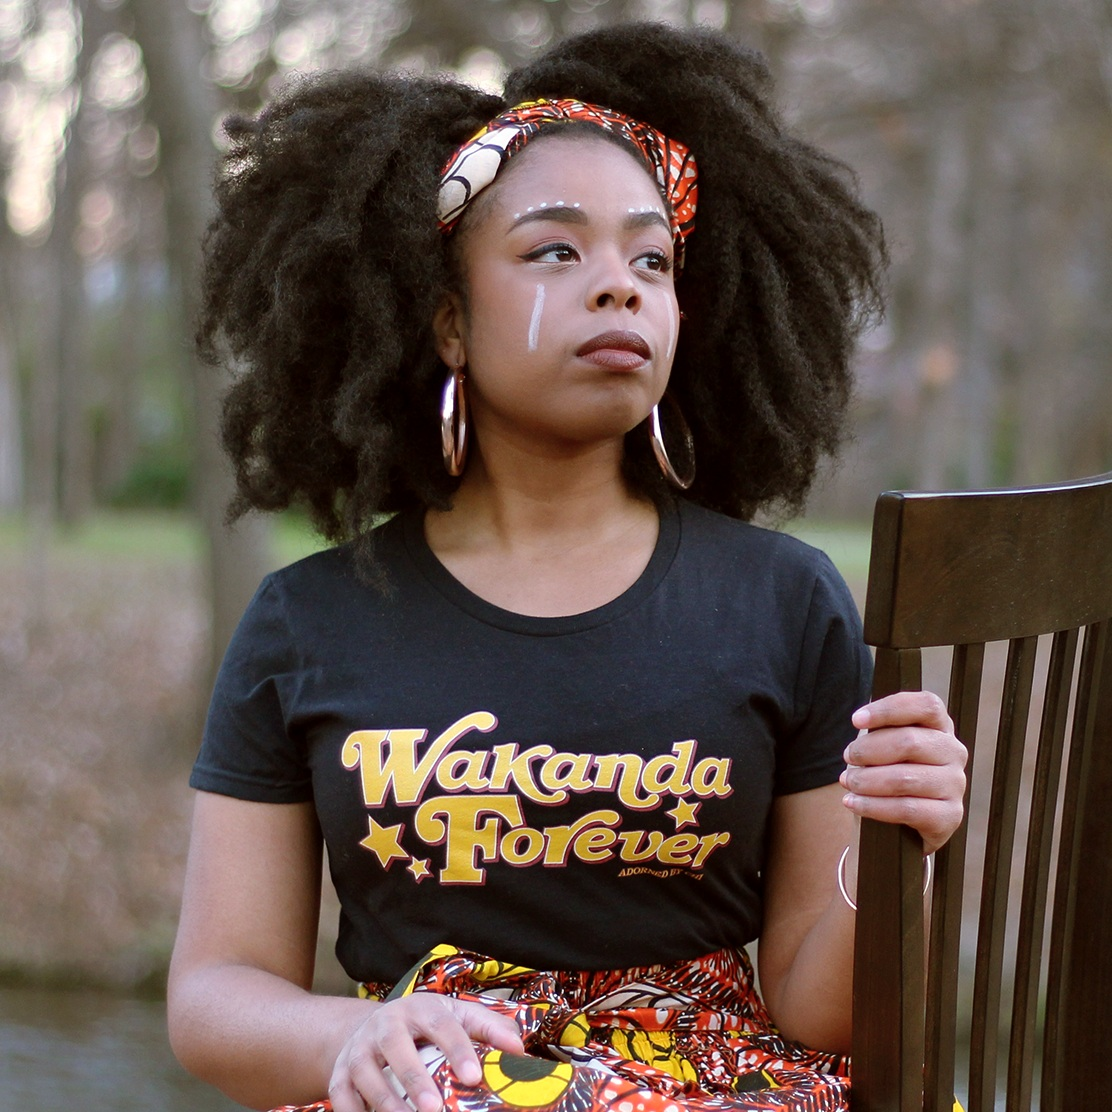 Adorned By Chi  is your go to for all your black girl mafic and nerd gear. They have everything from comics, to clothing to home goods. Started by two young black women, this online store is filled with fun stuff for the black nerd in your life.